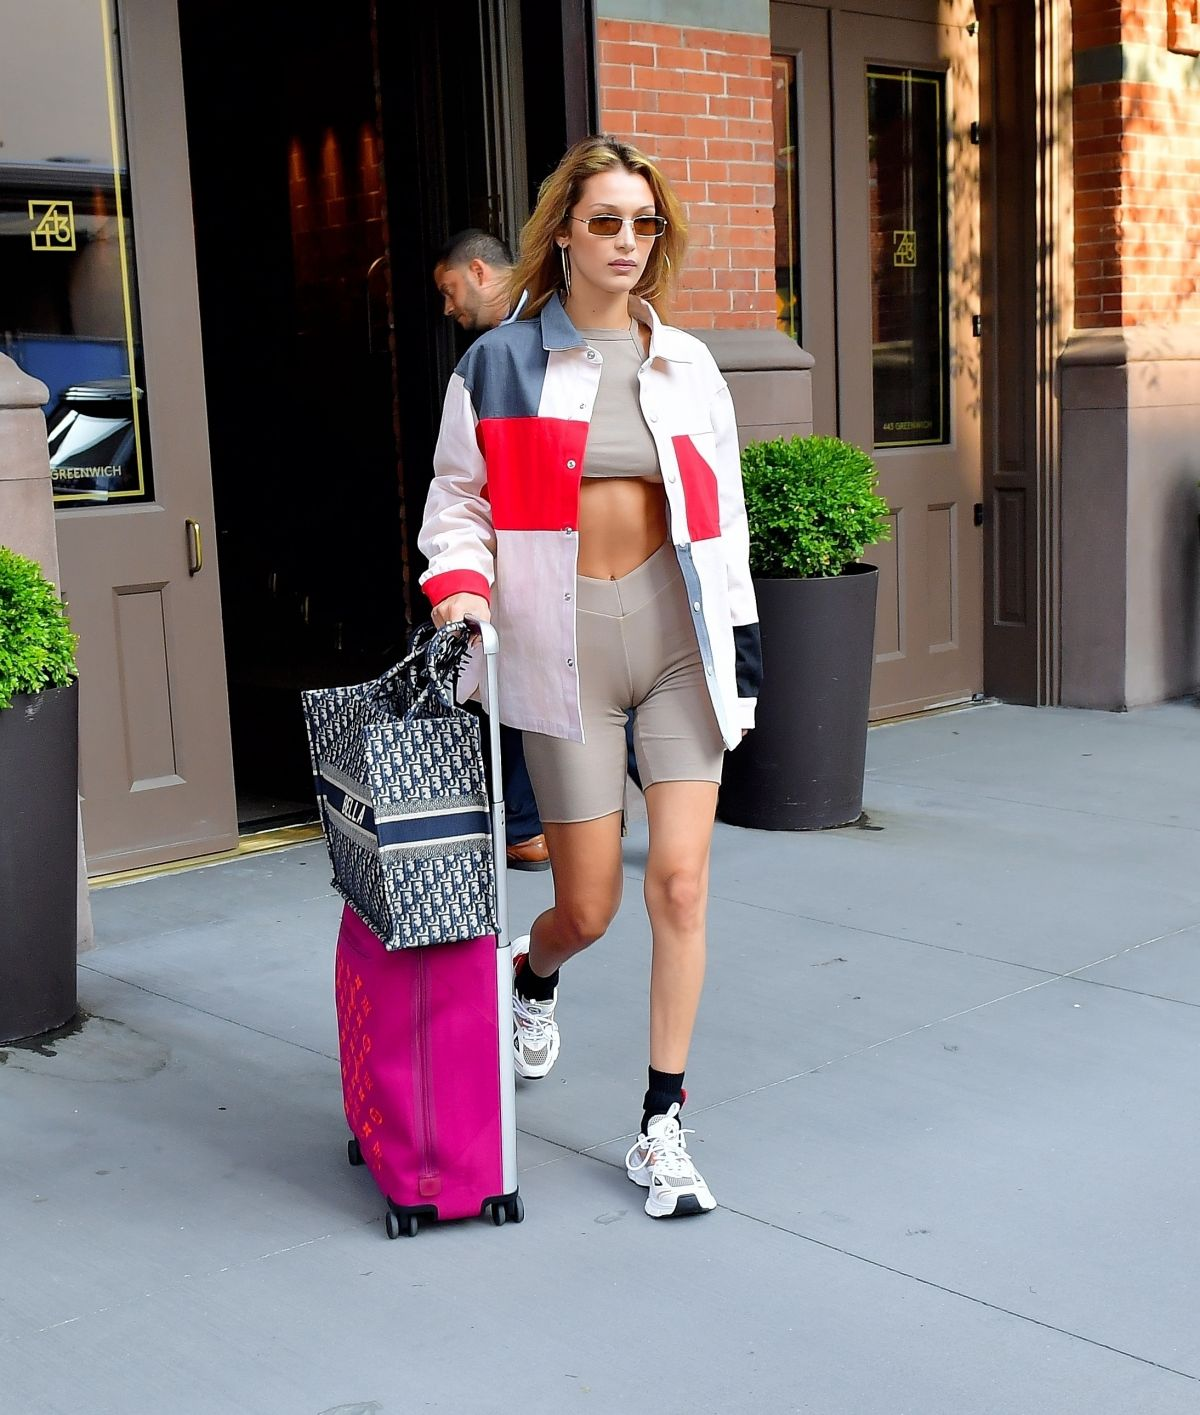 Bella Hadid Leaves Her Apartment In New York 07 25 2019